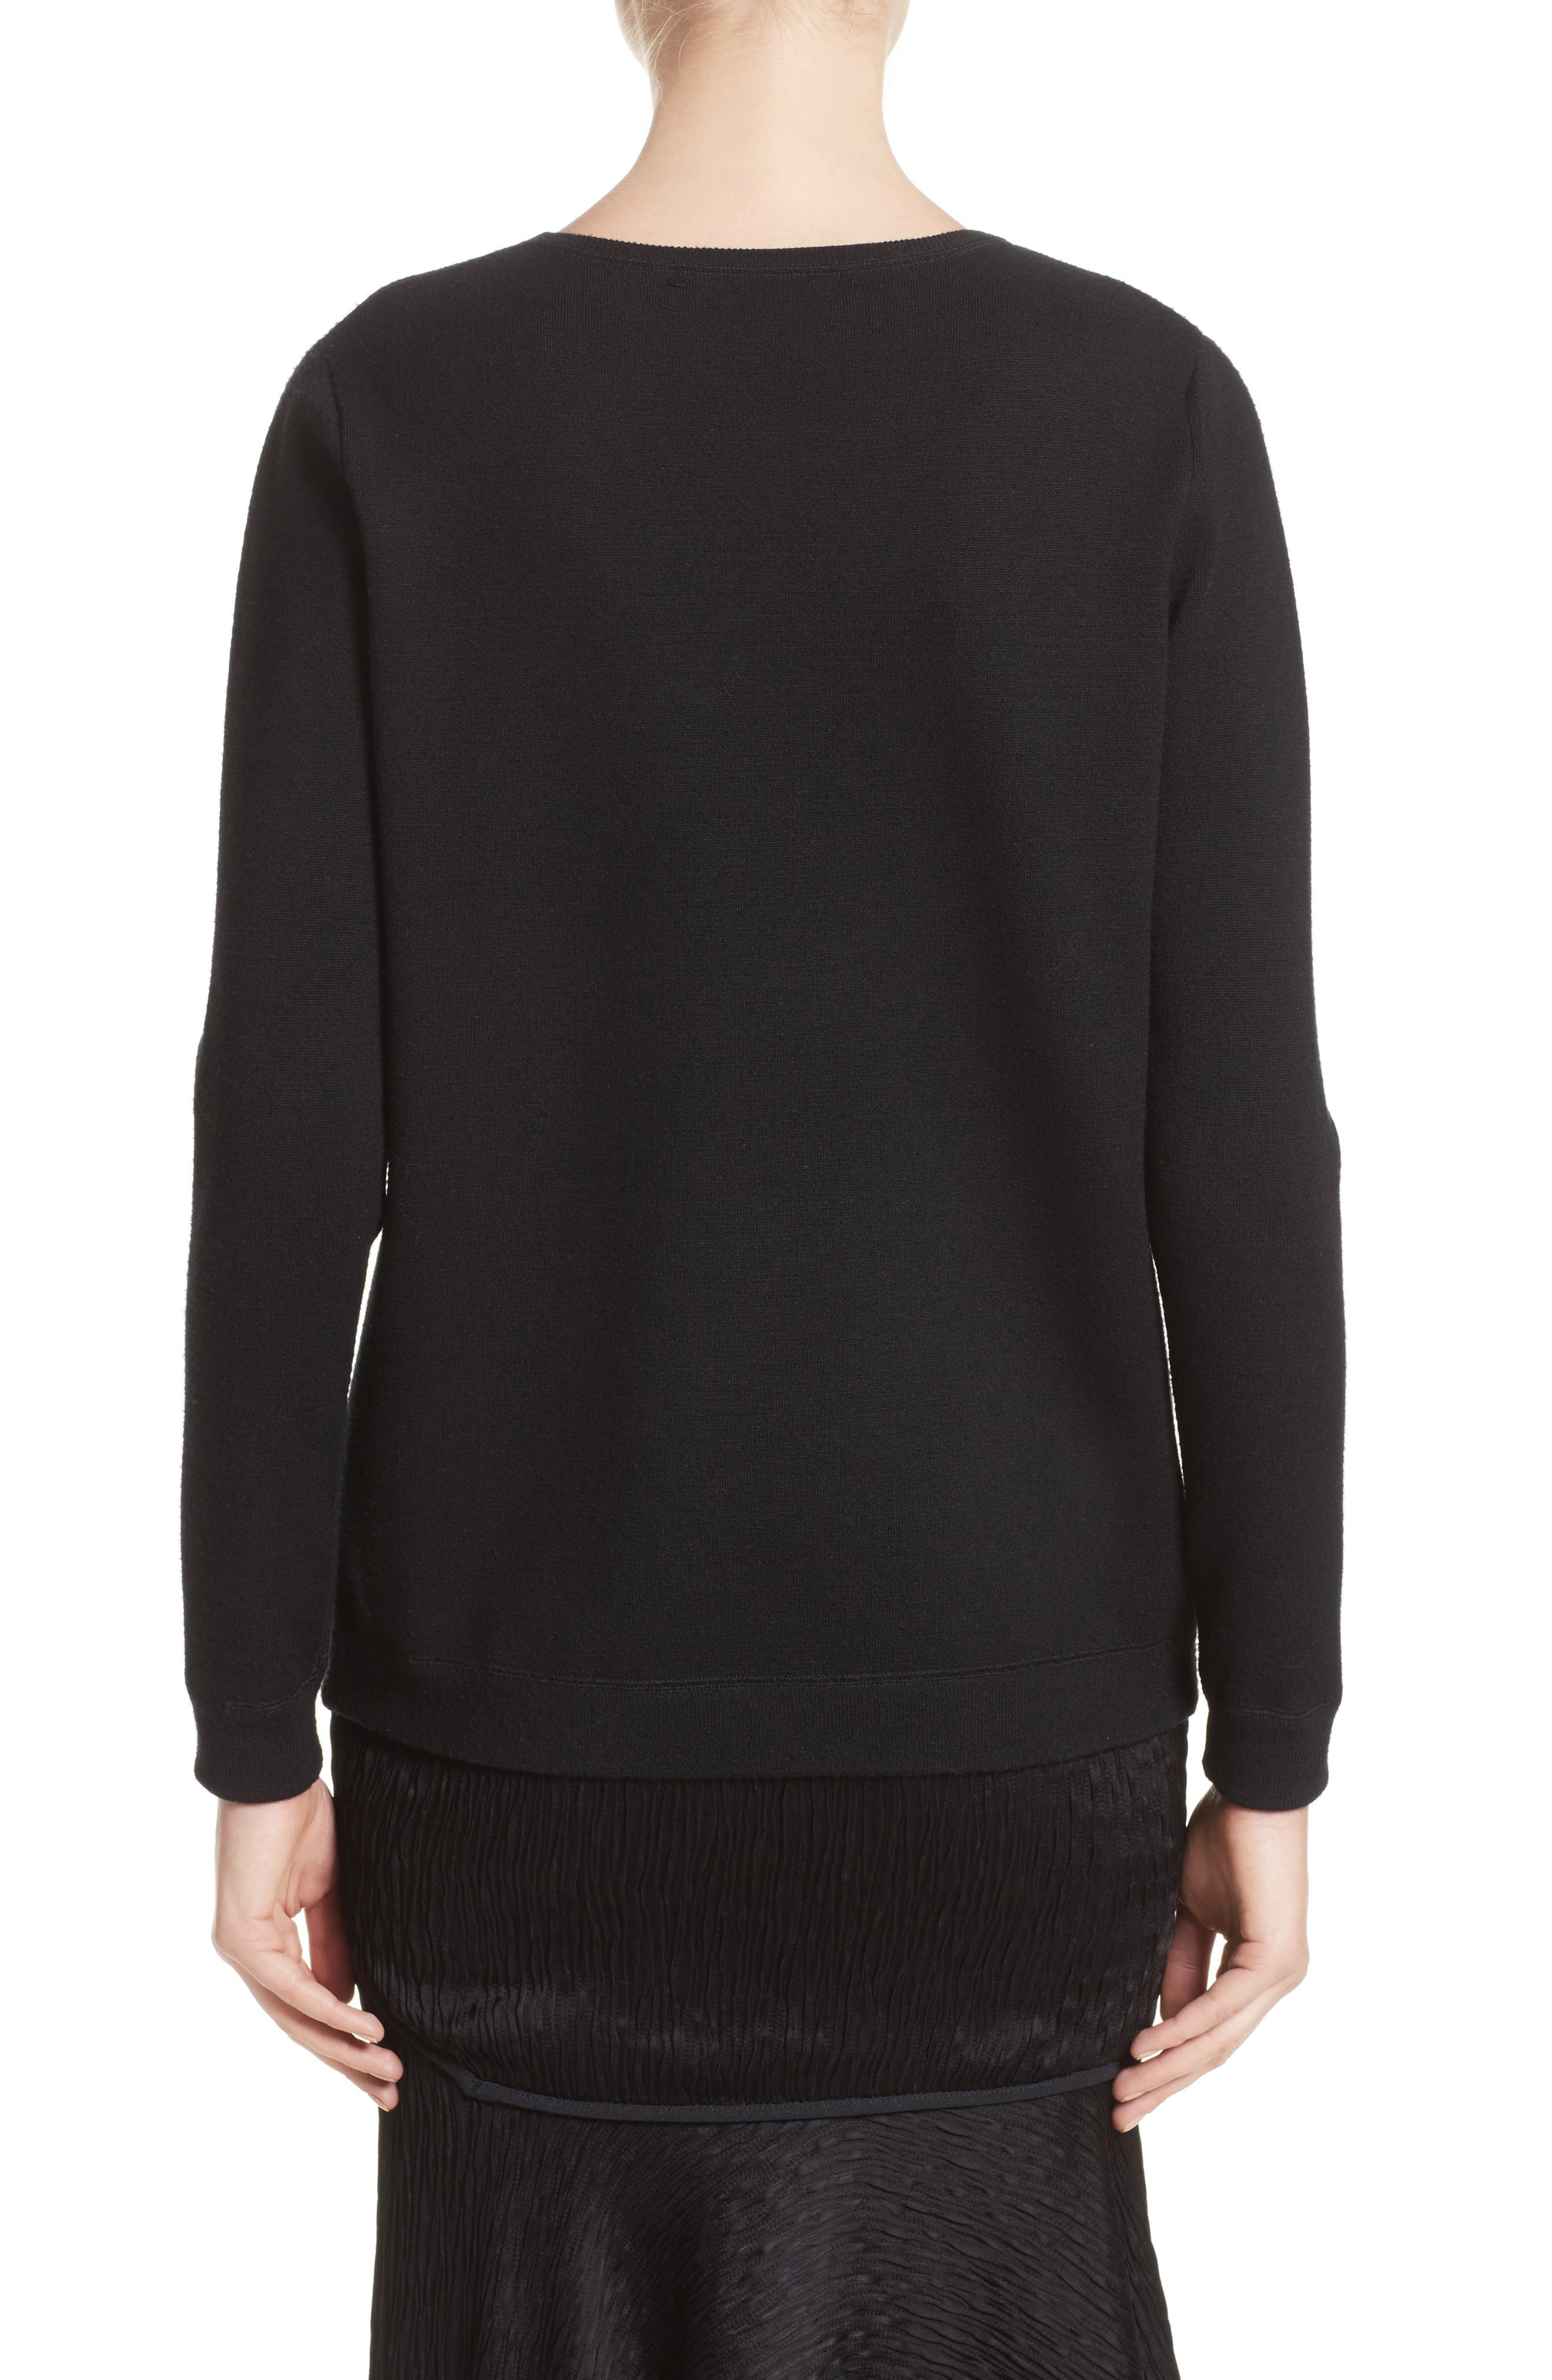 Floral Embroidered Merino Wool Blend Sweater,                             Alternate thumbnail 2, color,                             Black